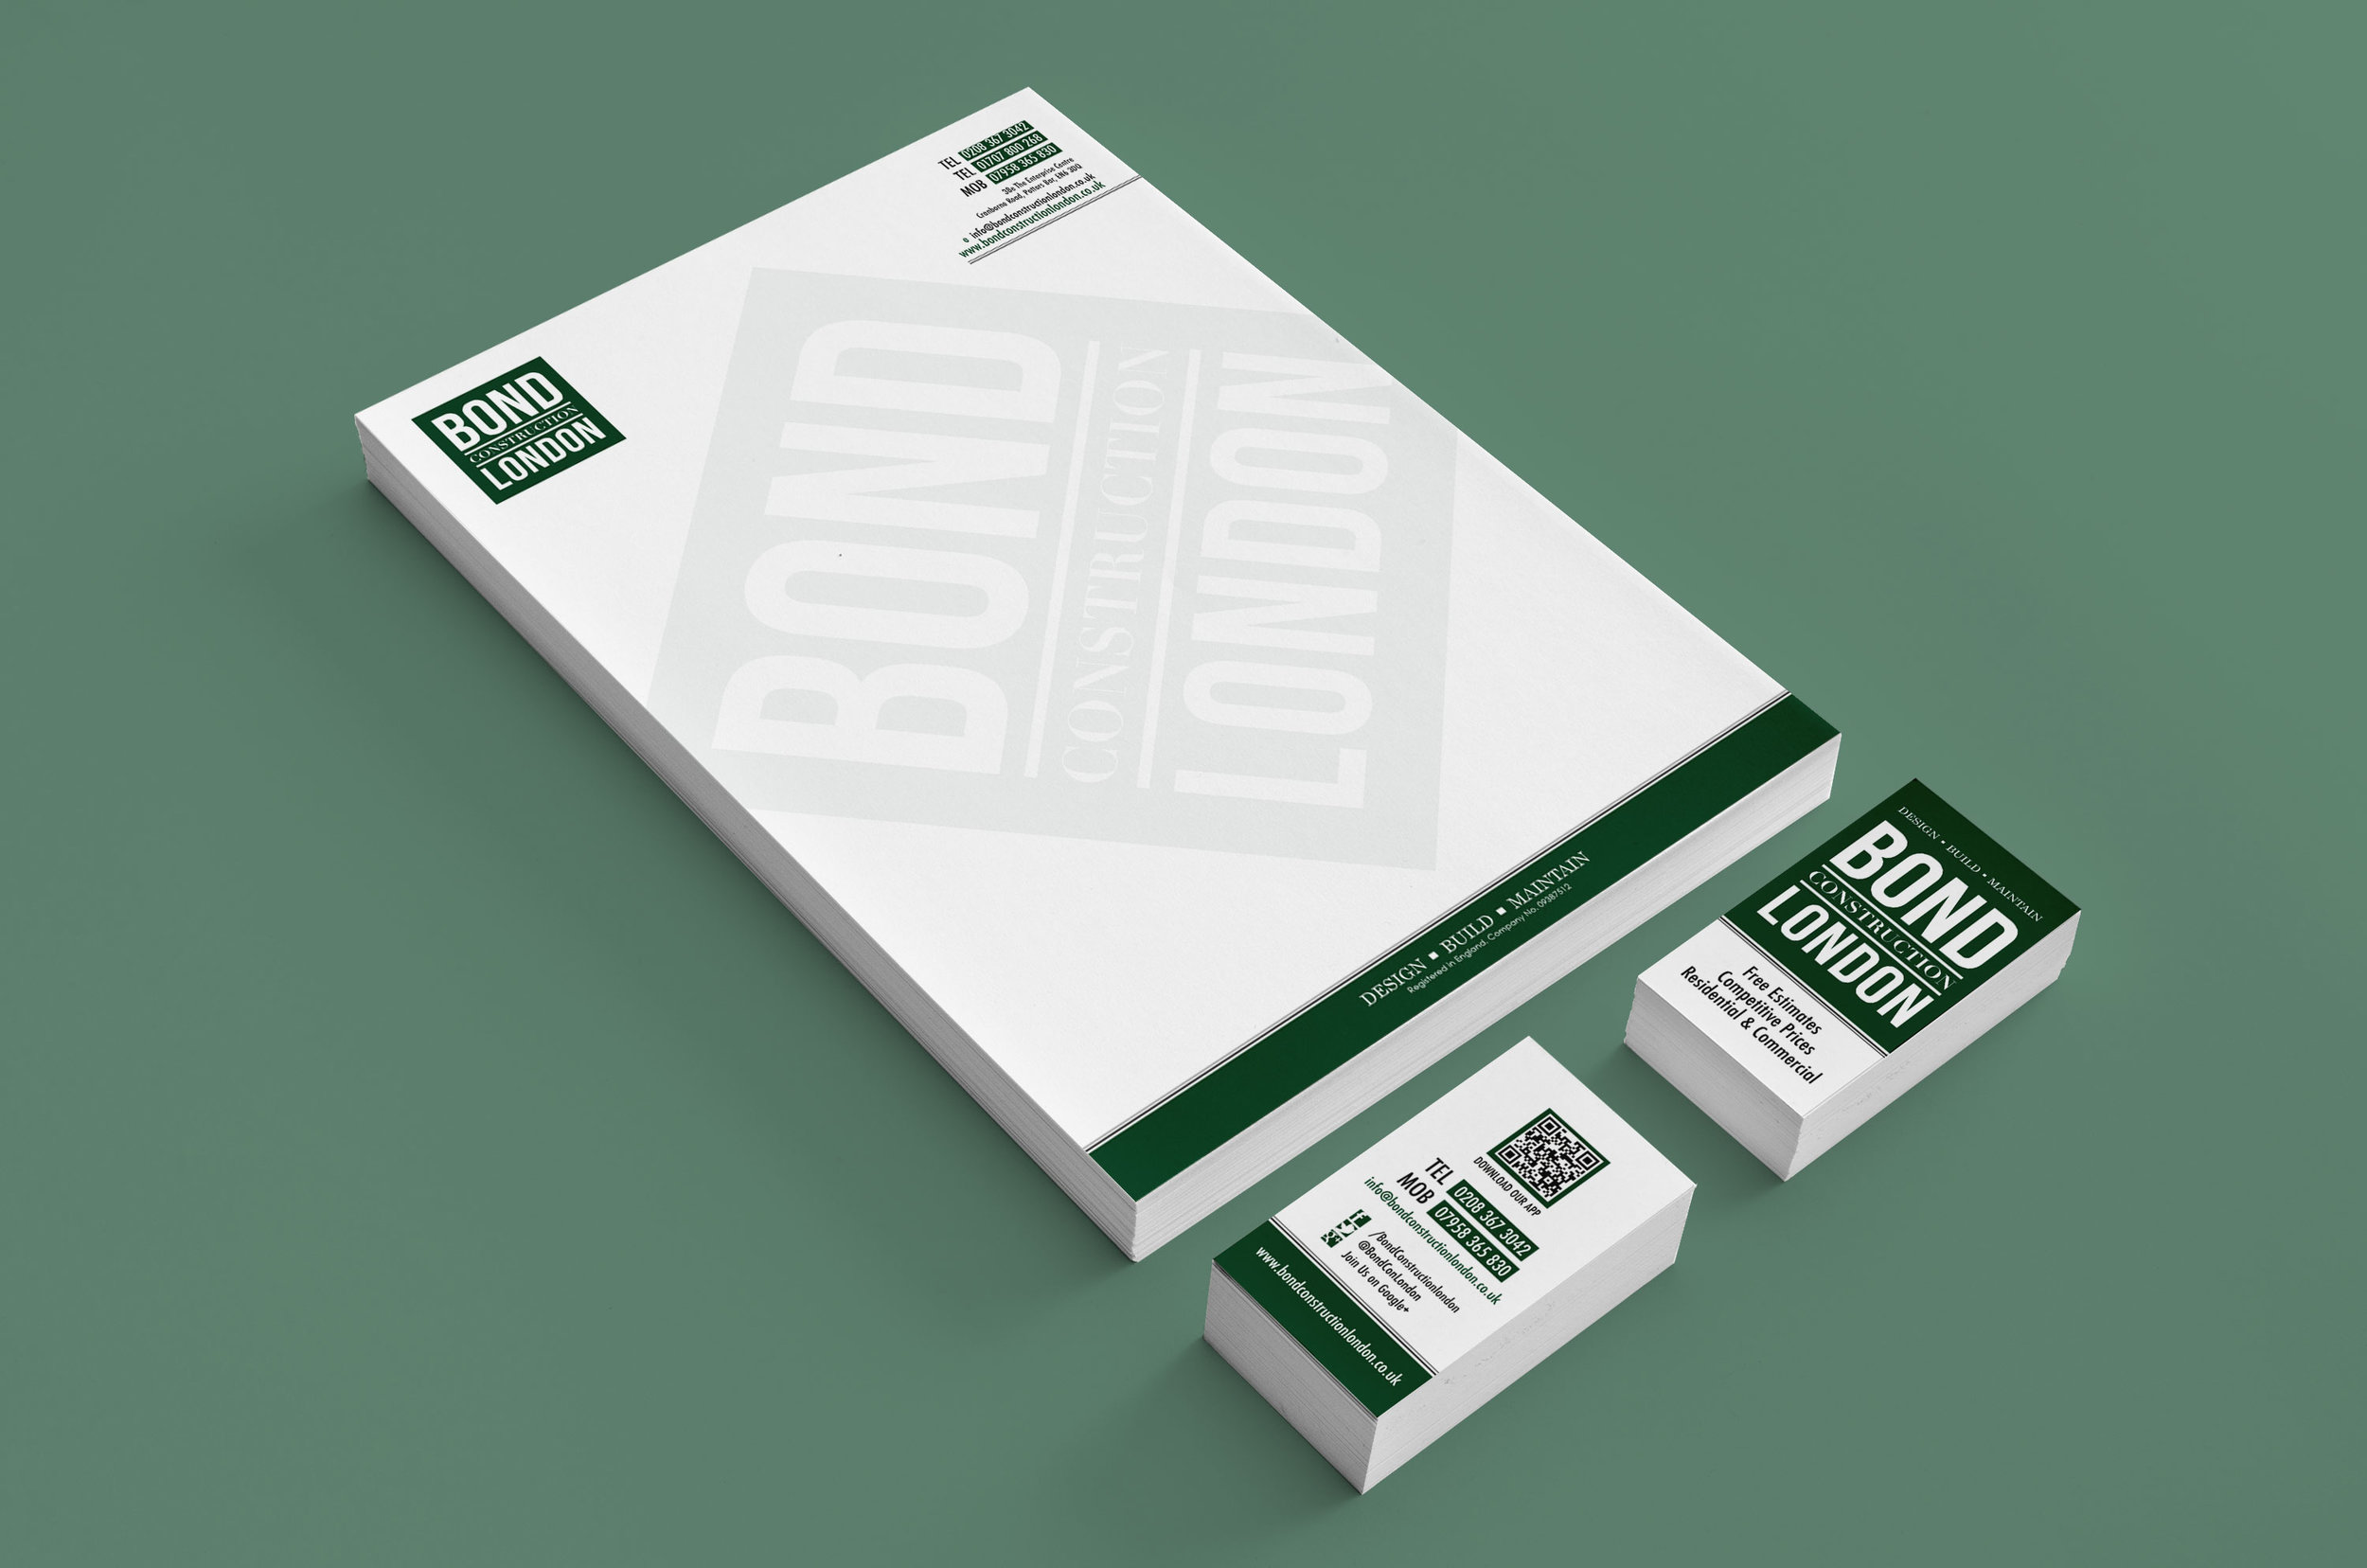 BRAND - LOGO & STATIONERY DESIGN